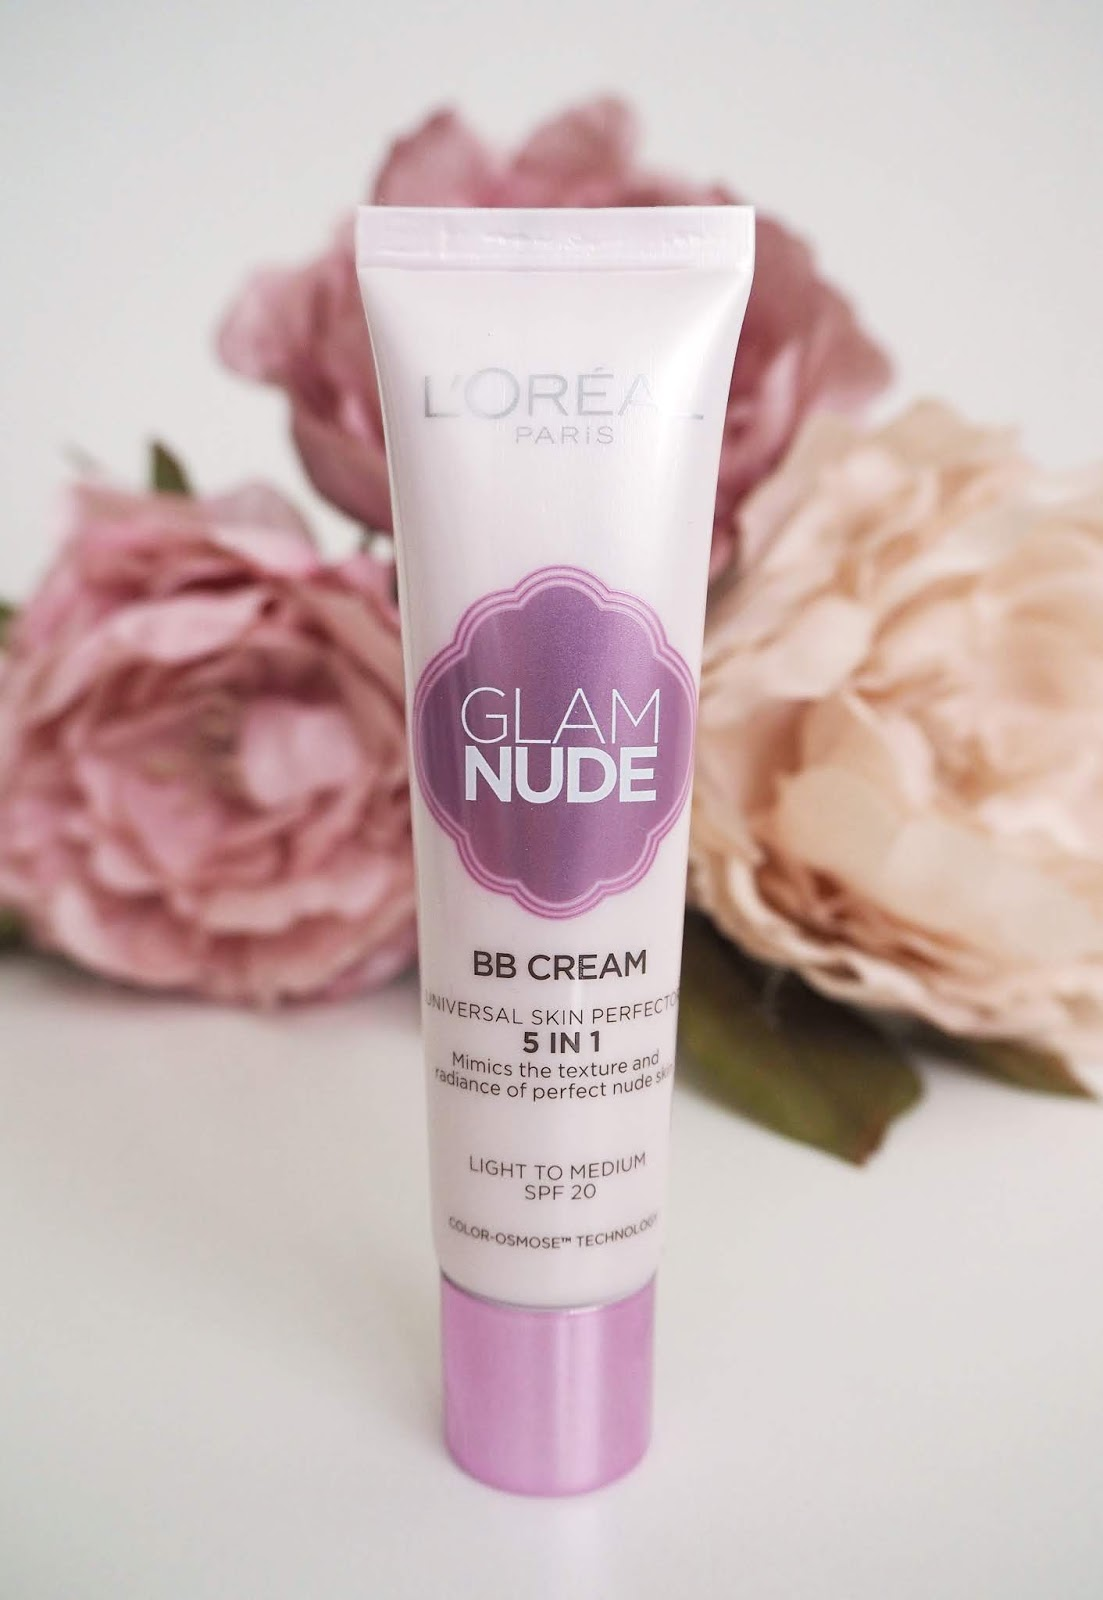 L'OREAL PARIS GLAM NUDE BB CREAM 5in1 recenze